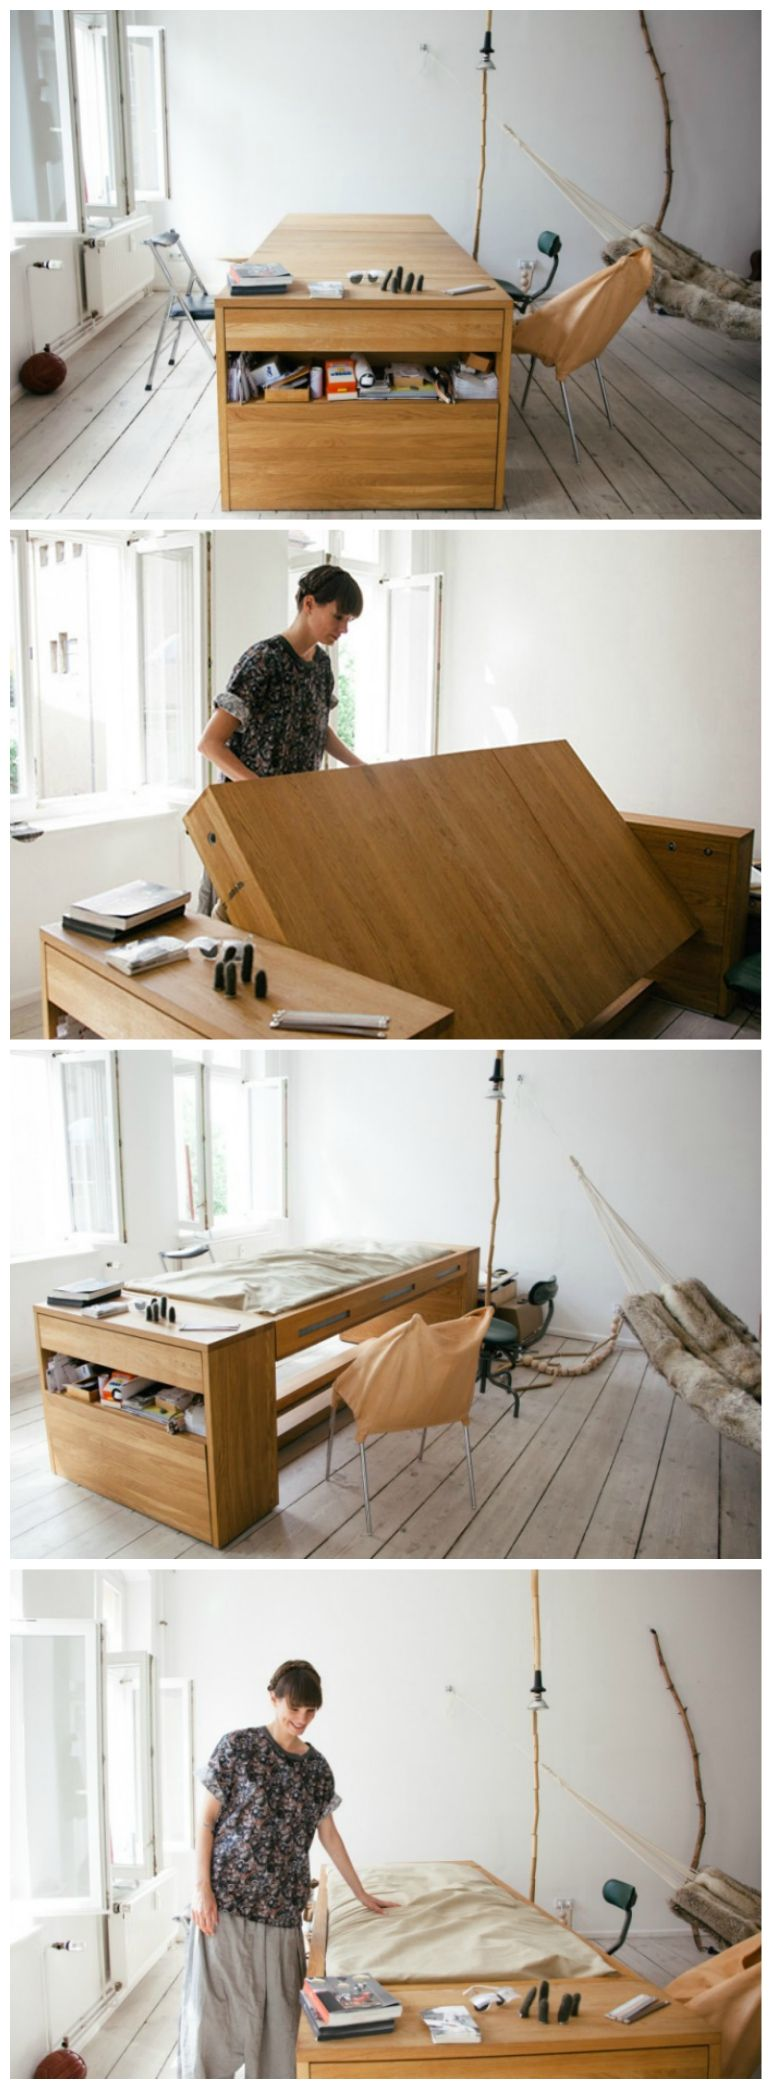 Space Saving Idea: A Desk That Transforms into a Bed | Organizing ...